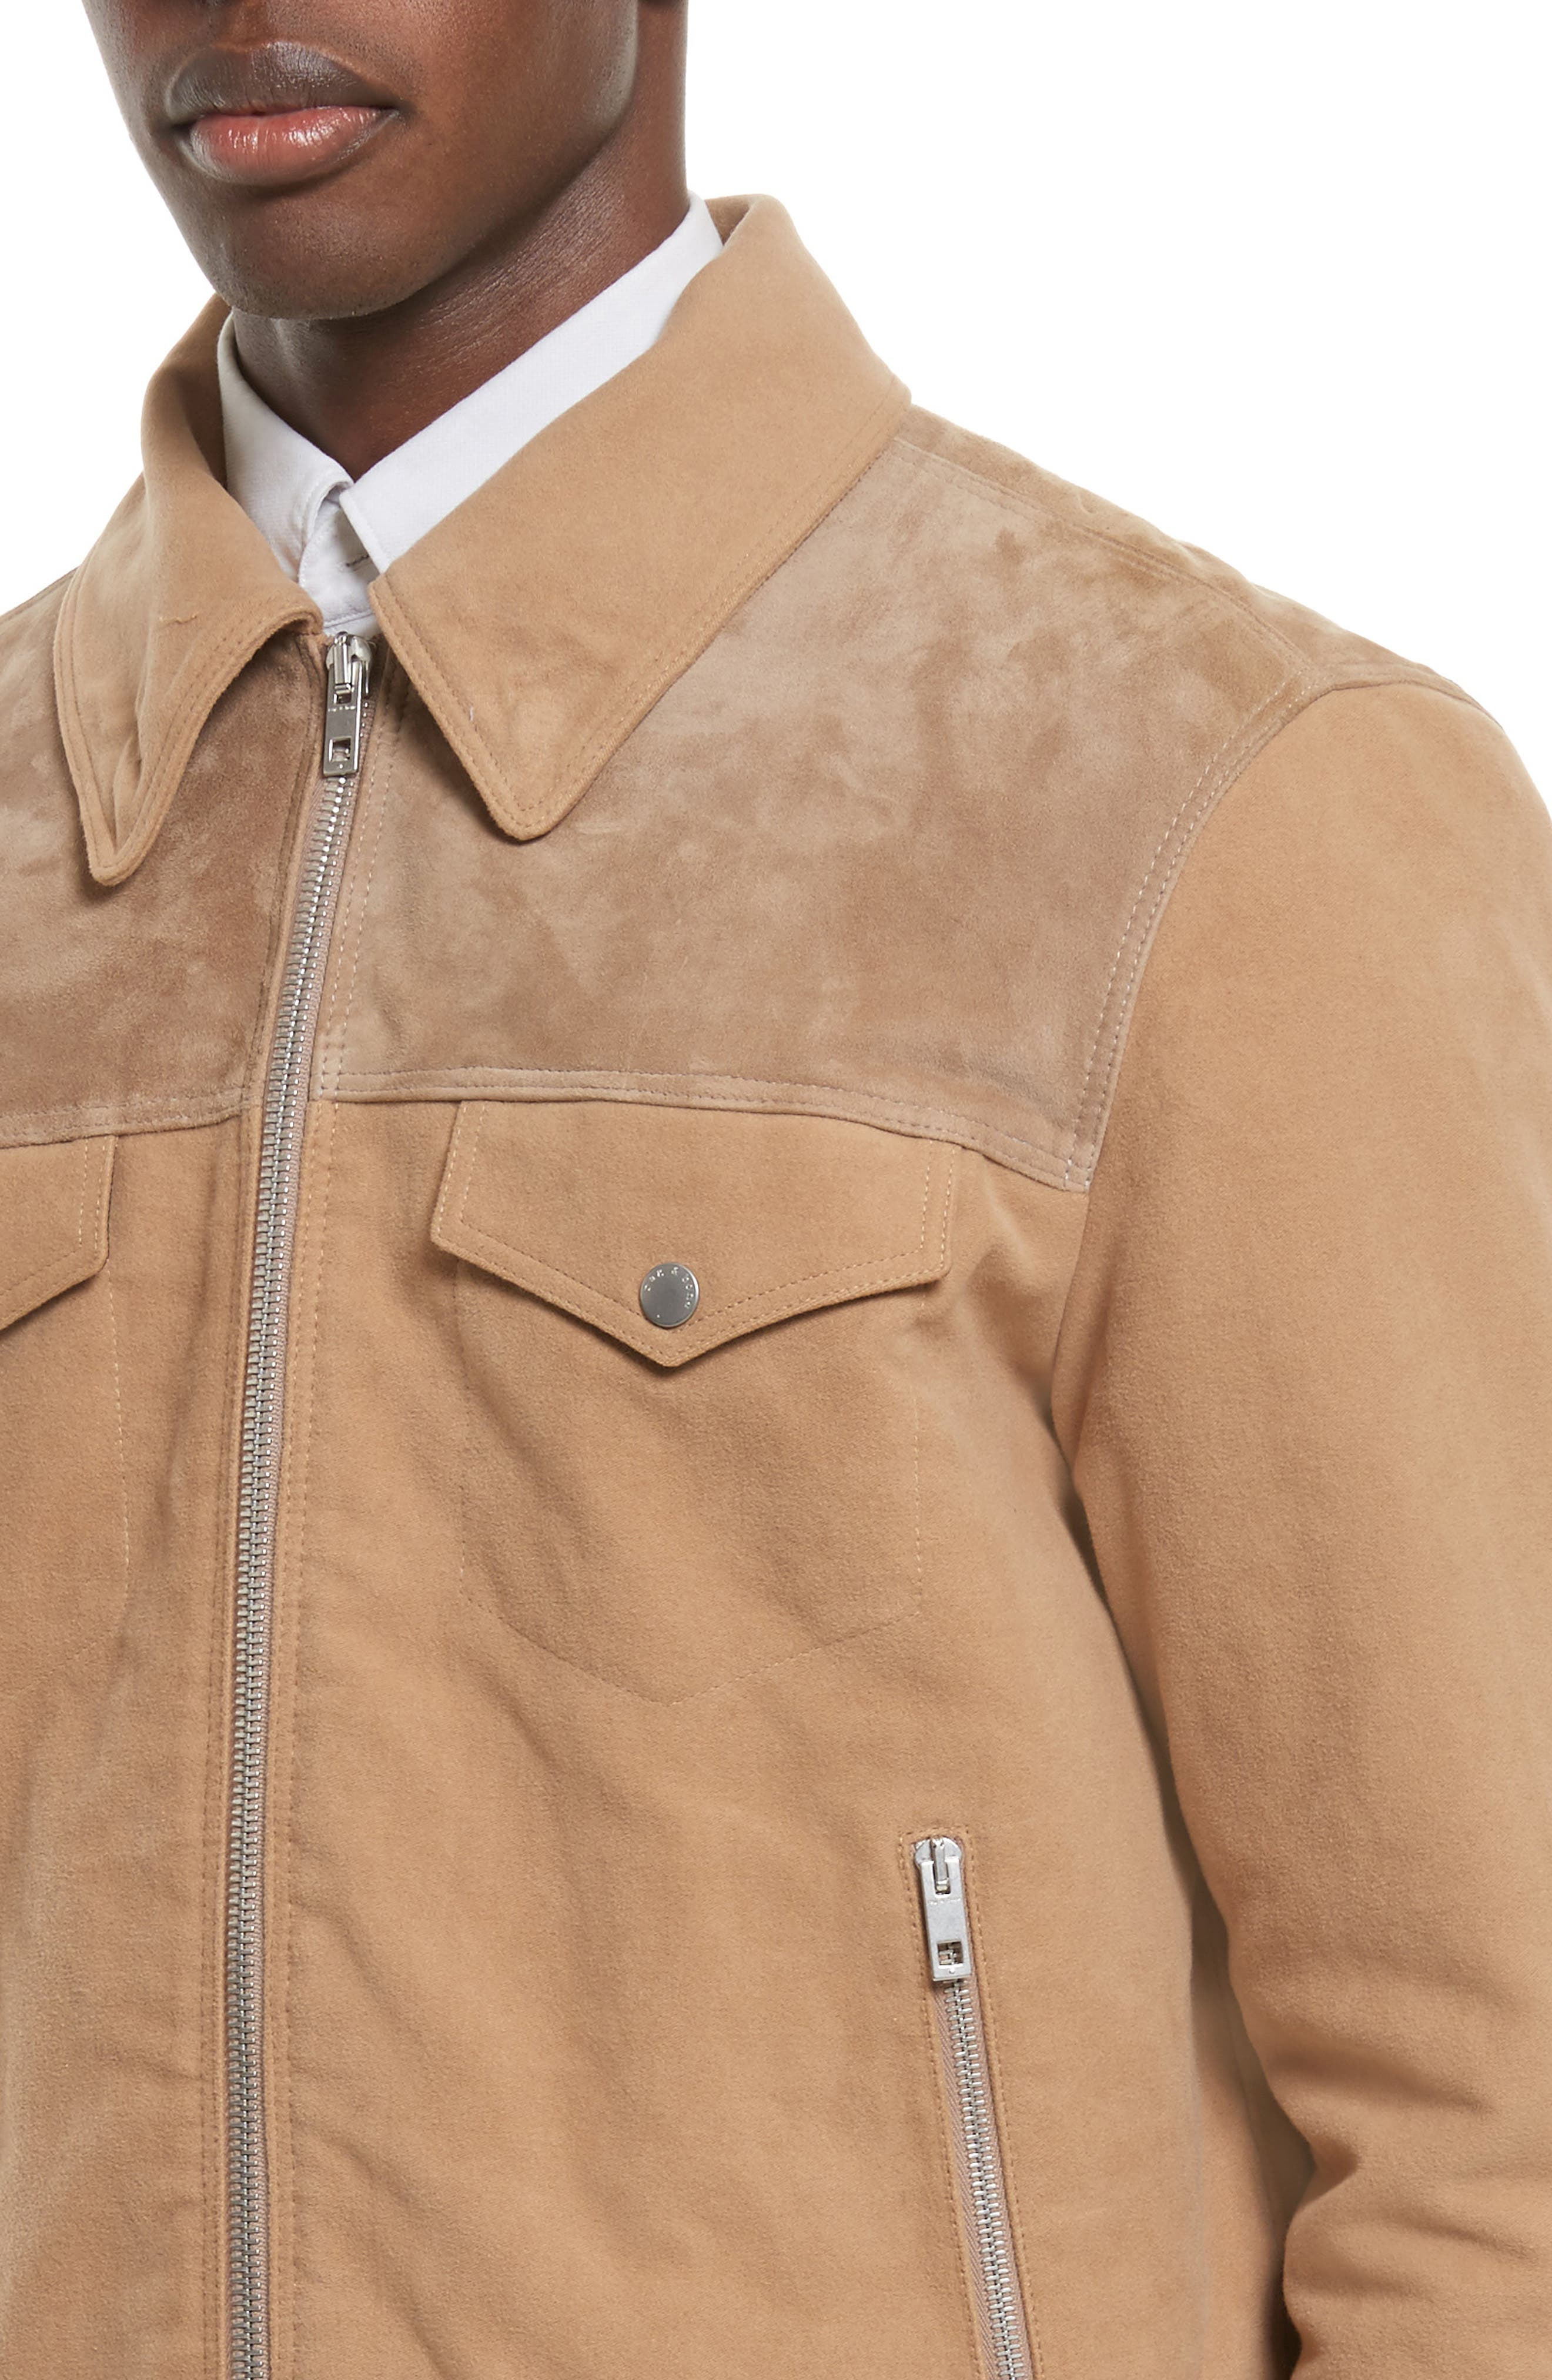 Matthew Work Jacket with Genuine Shearling Collar,                             Alternate thumbnail 4, color,                             Camel